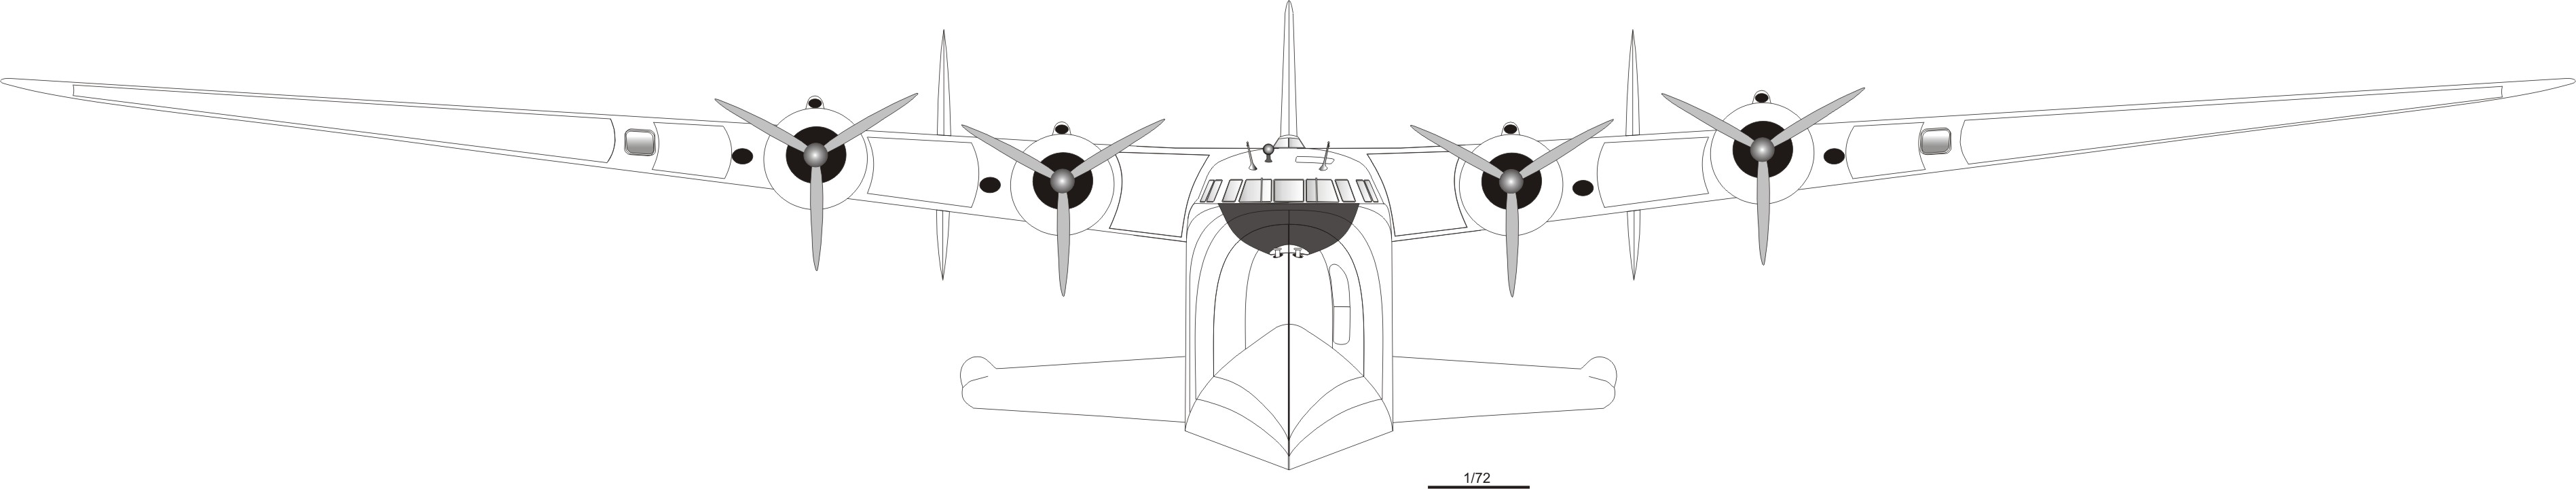 Boeing 314 blueprint